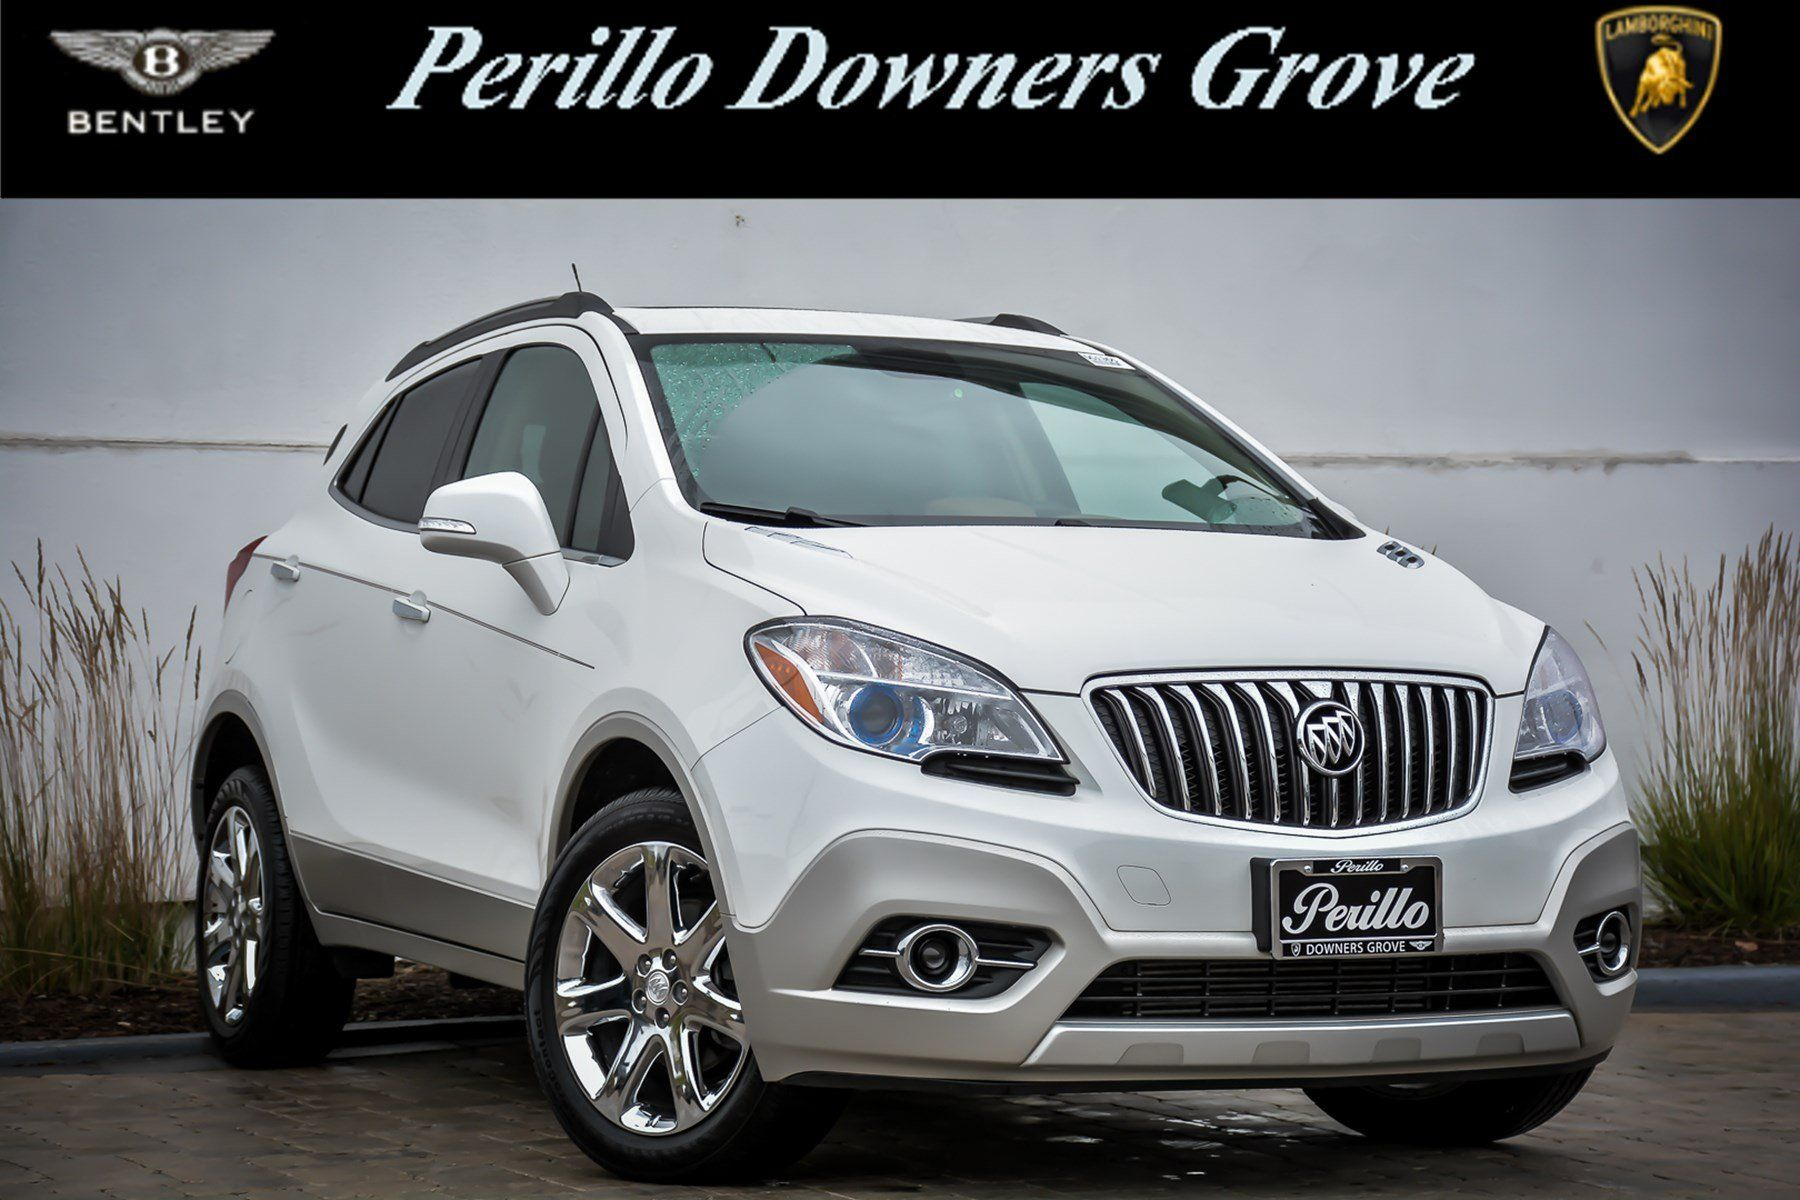 New Vehicle Inventory Perillo Downers Grove Downers Grove Il Downers Grove Buick Encore Vehicles